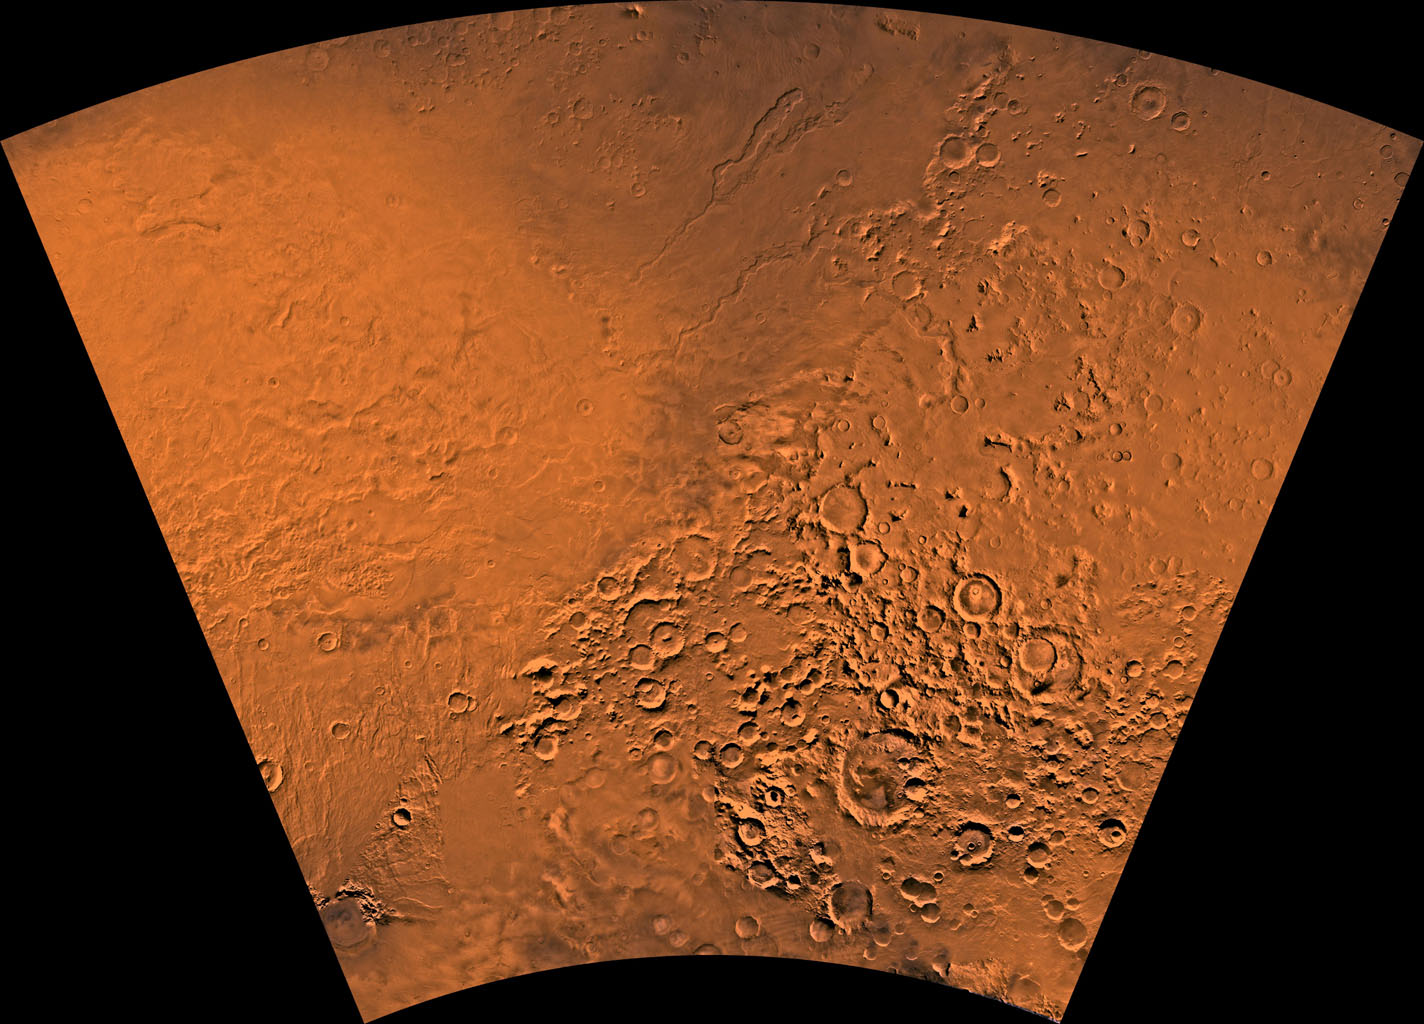 Hellas region of Mars